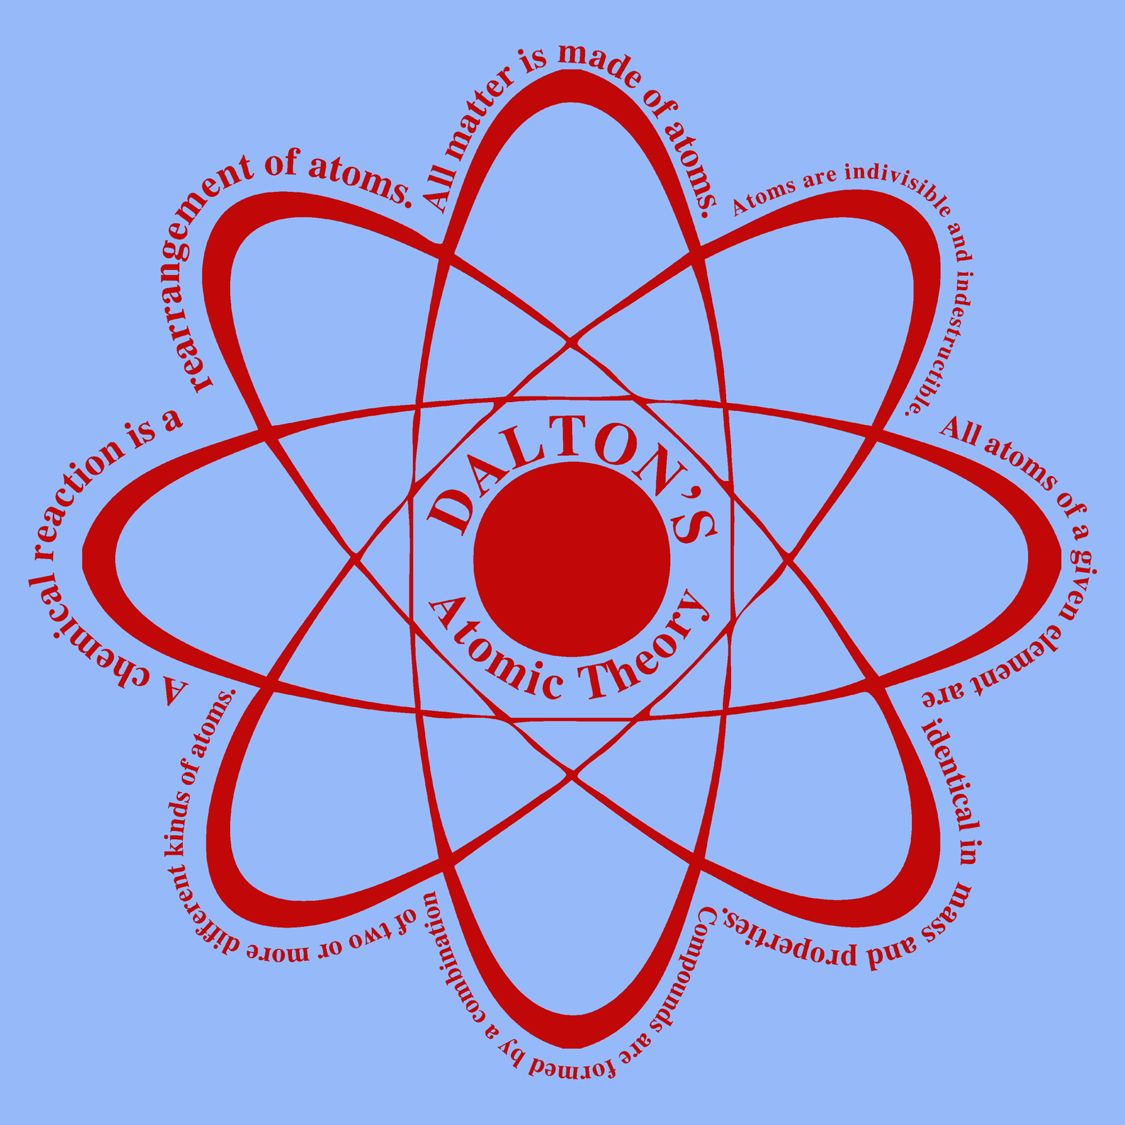 daltons theory This is a summary of dalton's atomic theory based from ma'am andaya's handout and the cracolice book.